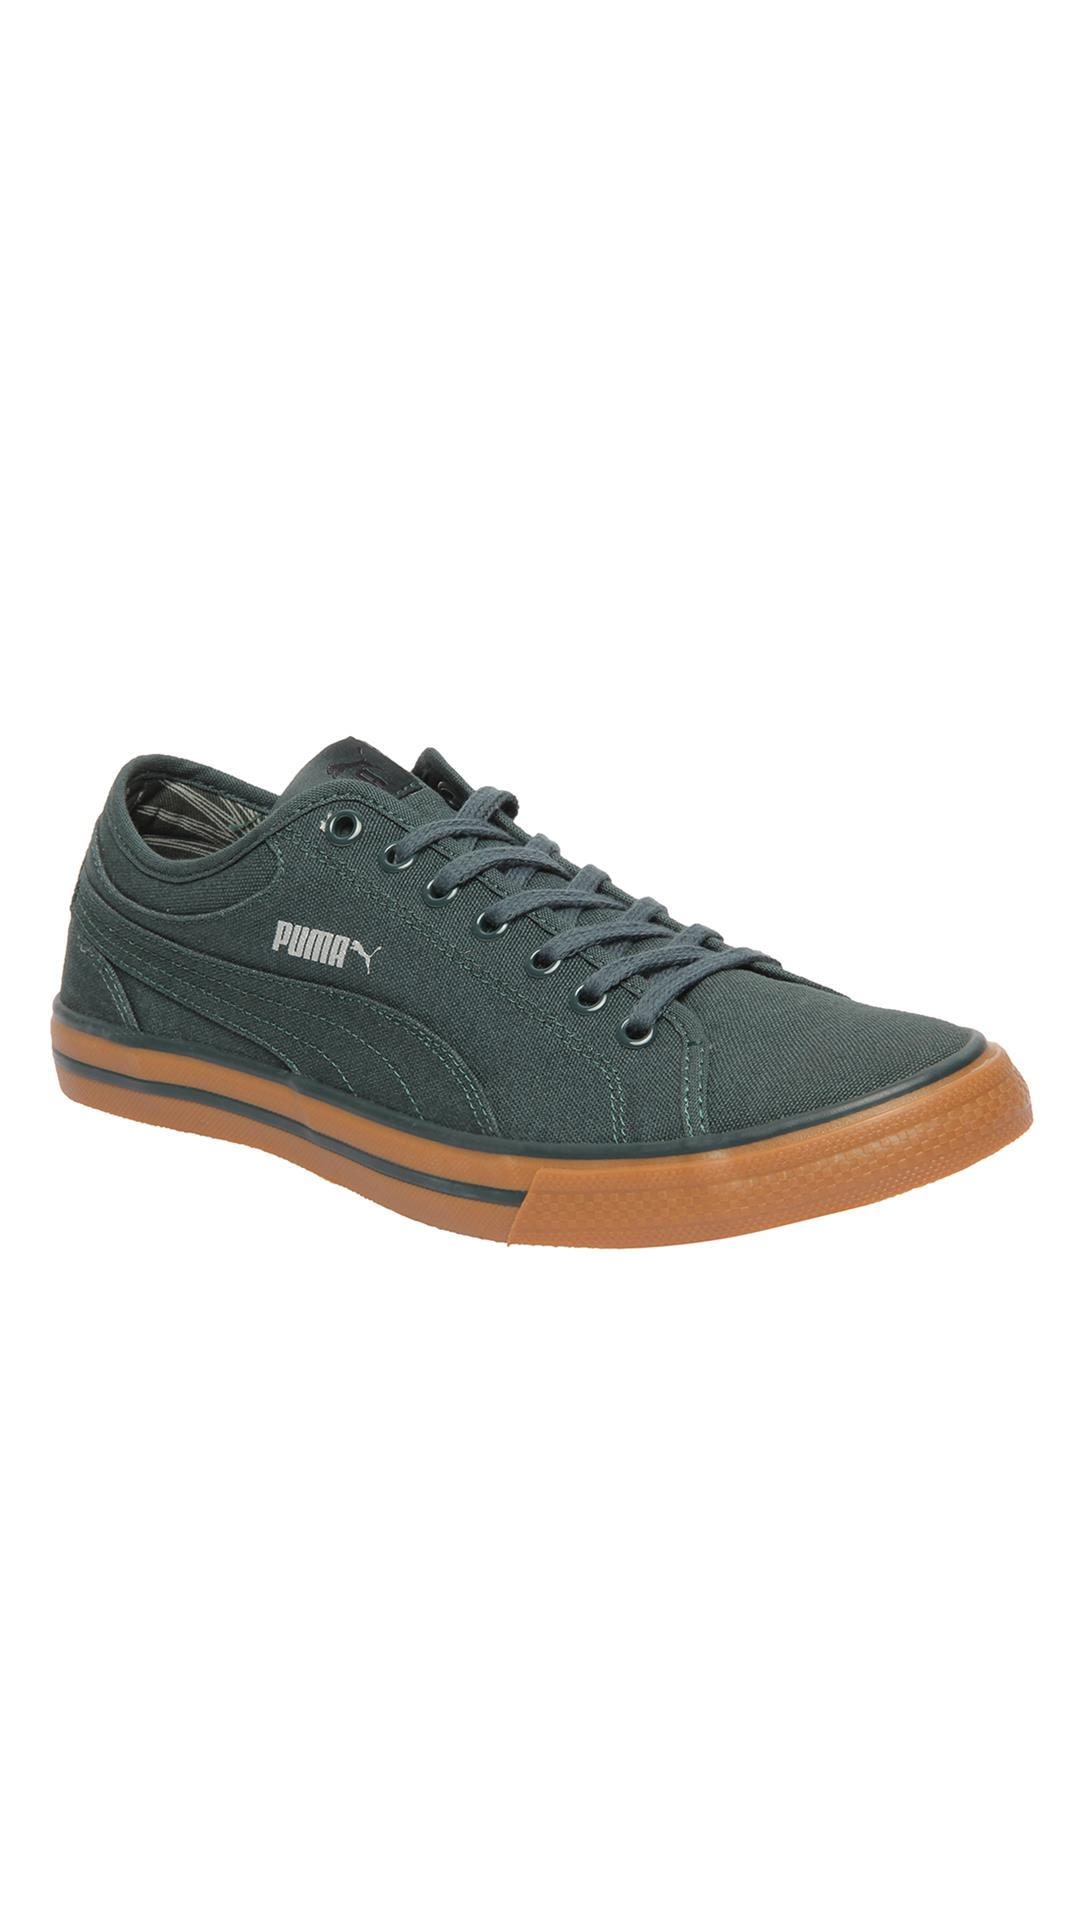 f7cef09e9e48bb https   assetscdn1.paytm.com images catalog product . Puma Unisex Yale Gum  Solid Green Sneakers Shoes